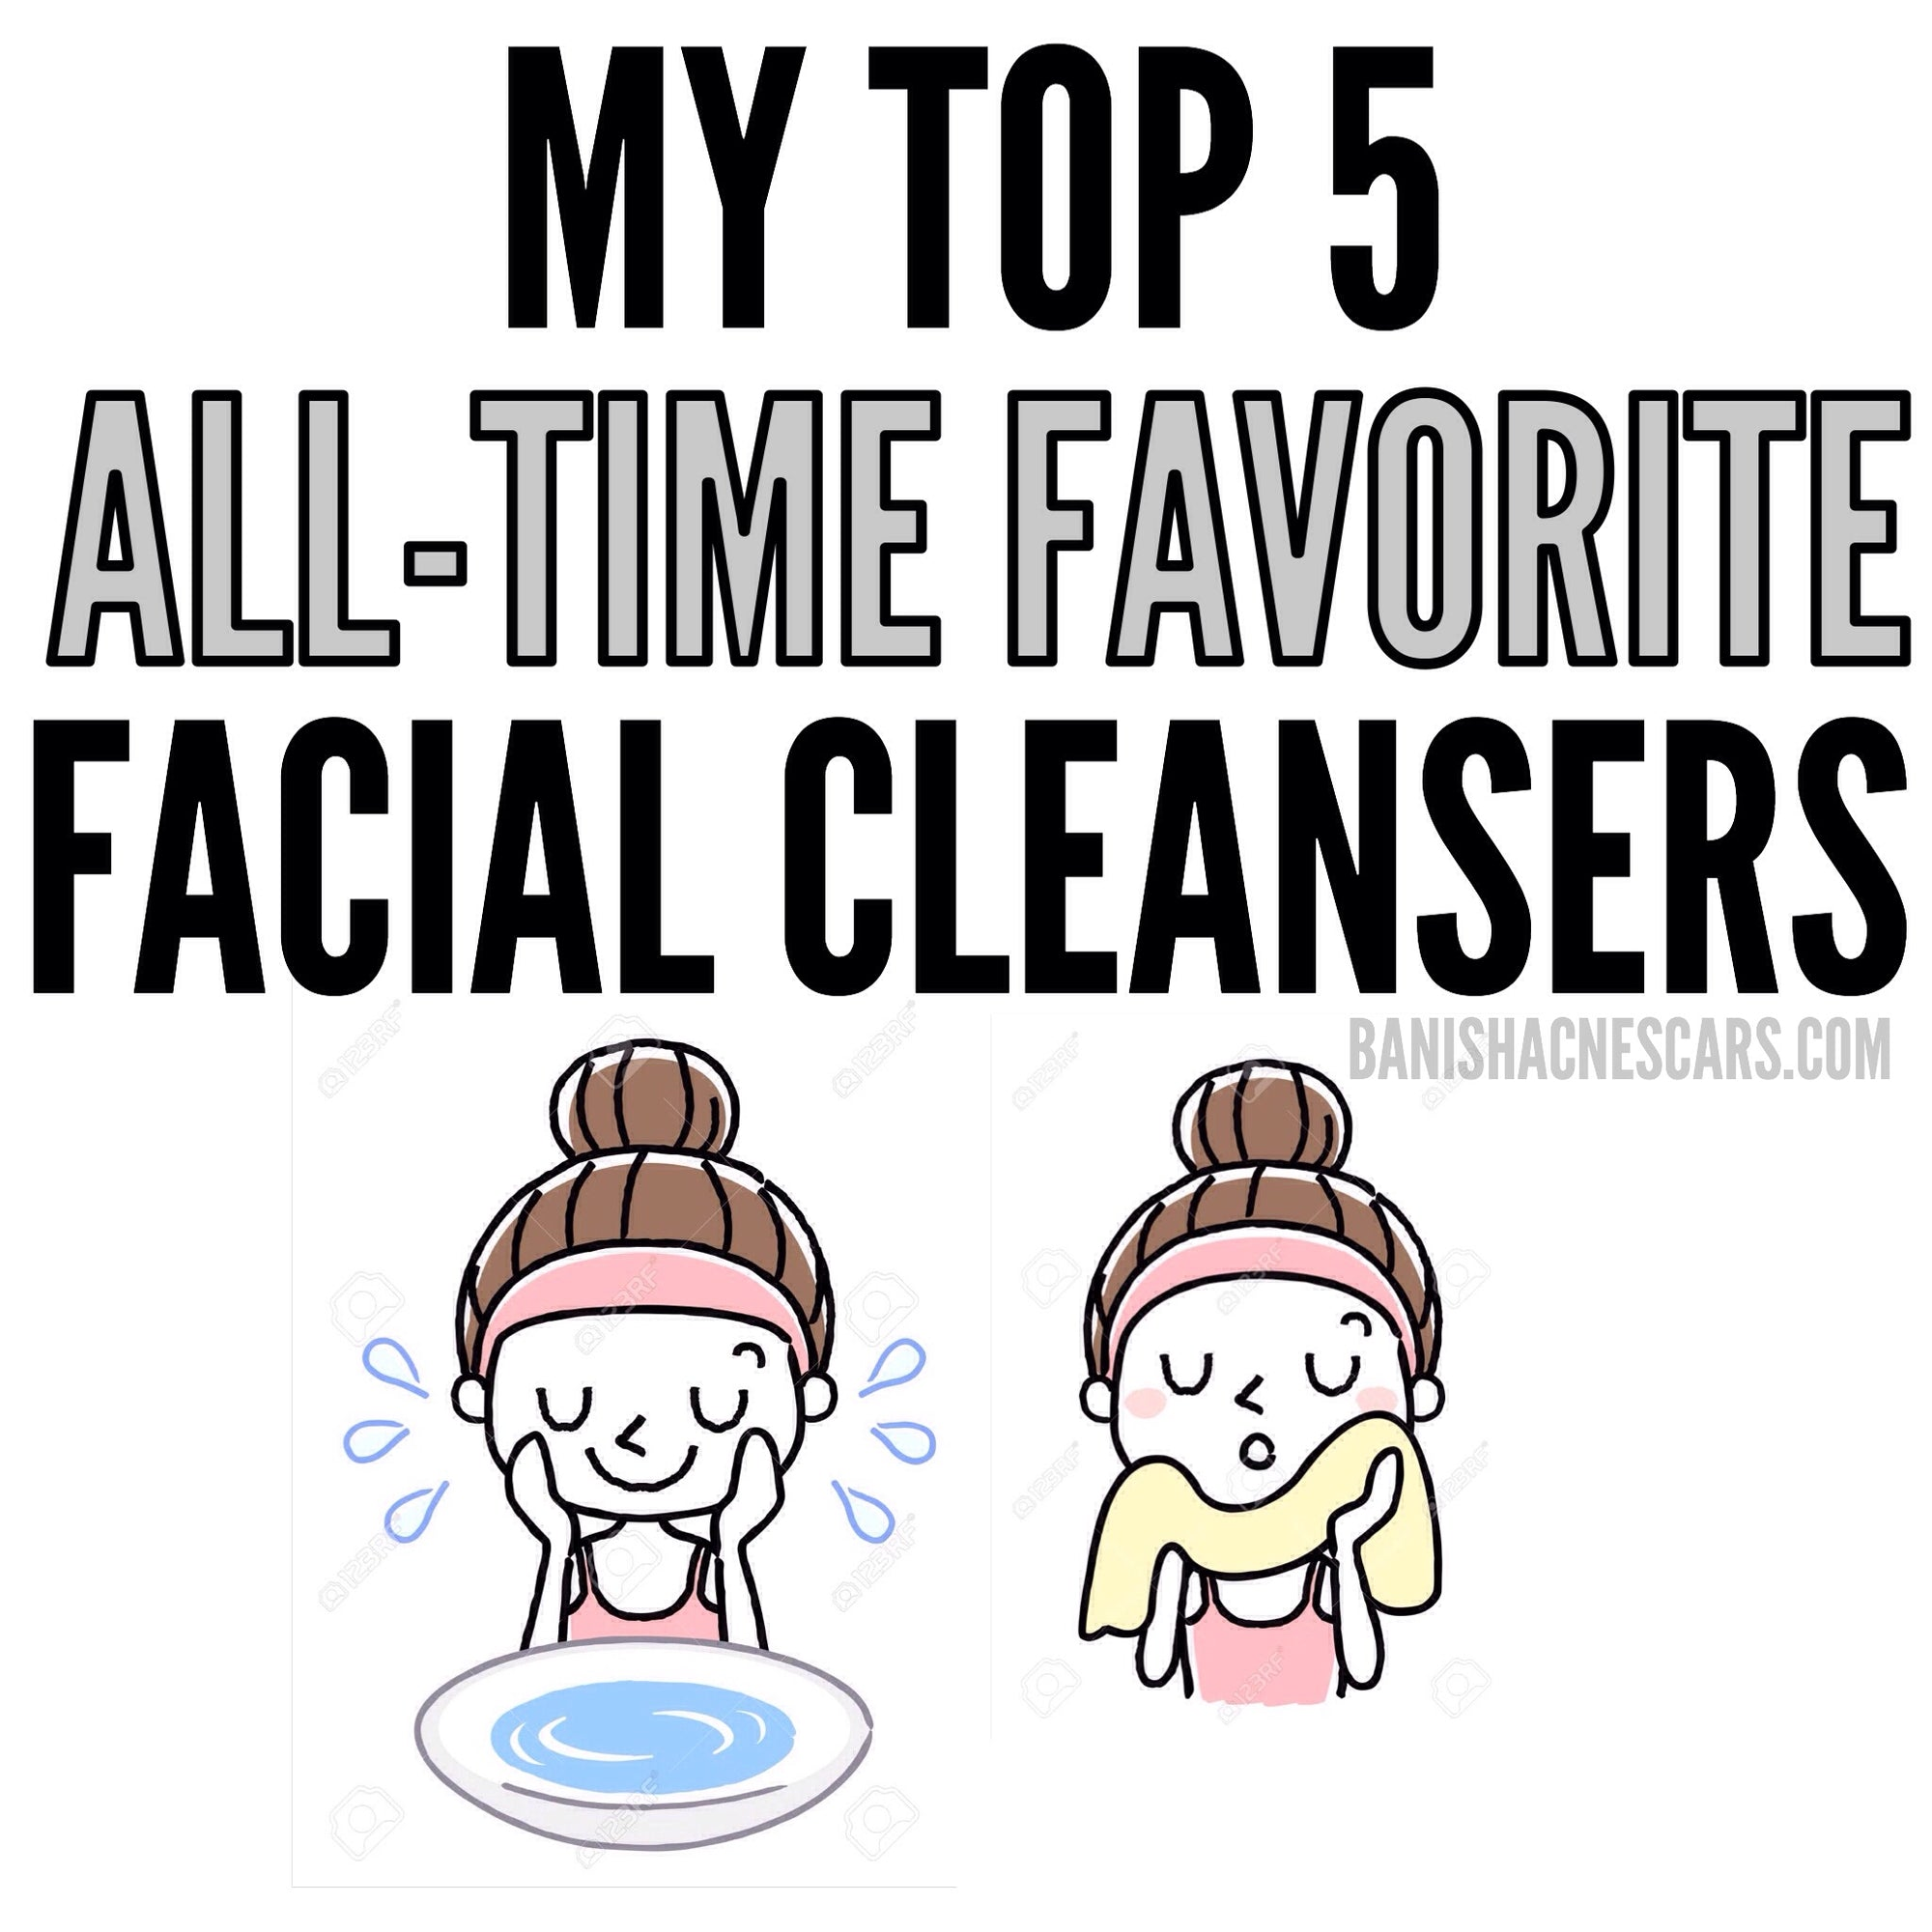 MY TOP 5 ALL-TIME FAVORITE FACIAL CLEANSERS